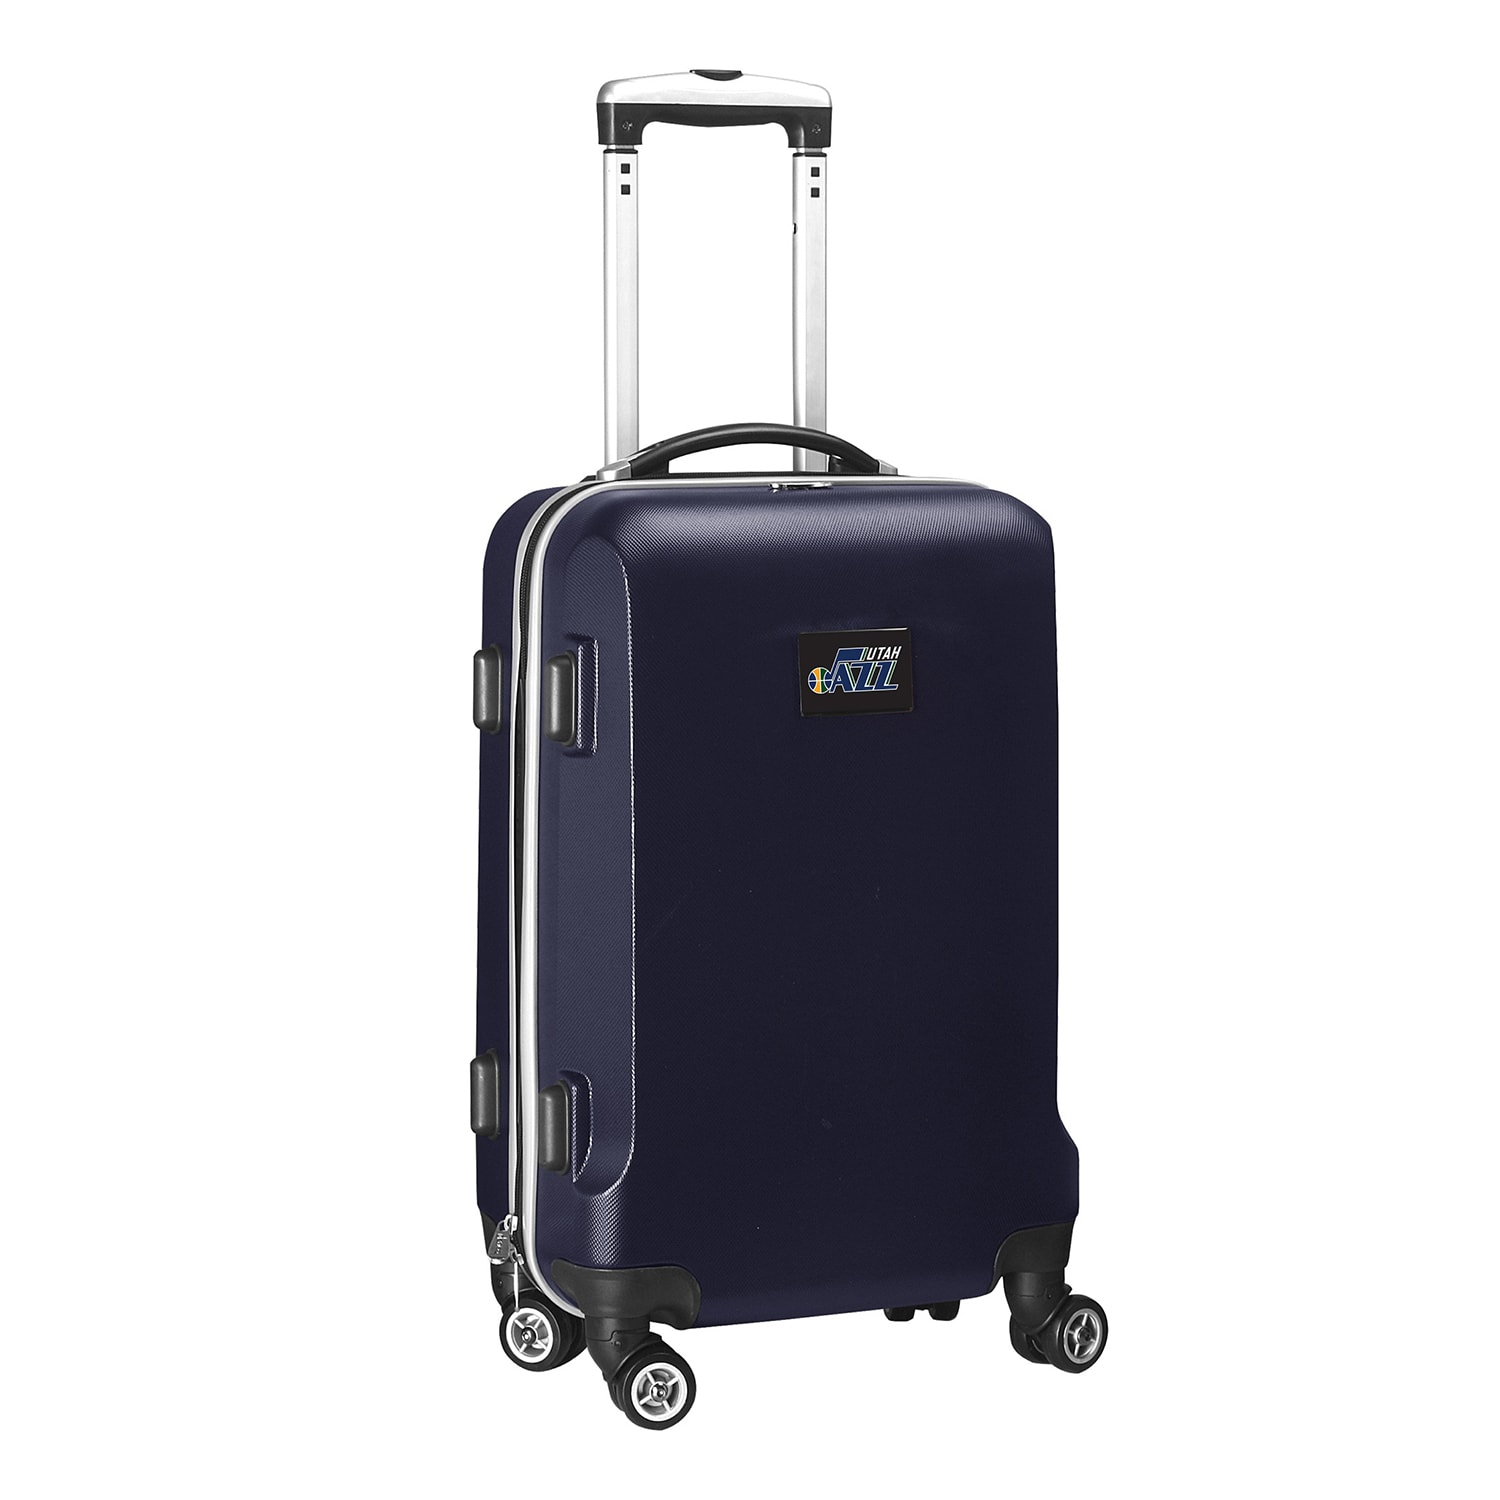 "Utah Jazz 21"" 8-Wheel Hardcase Spinner Carry-On - Navy"